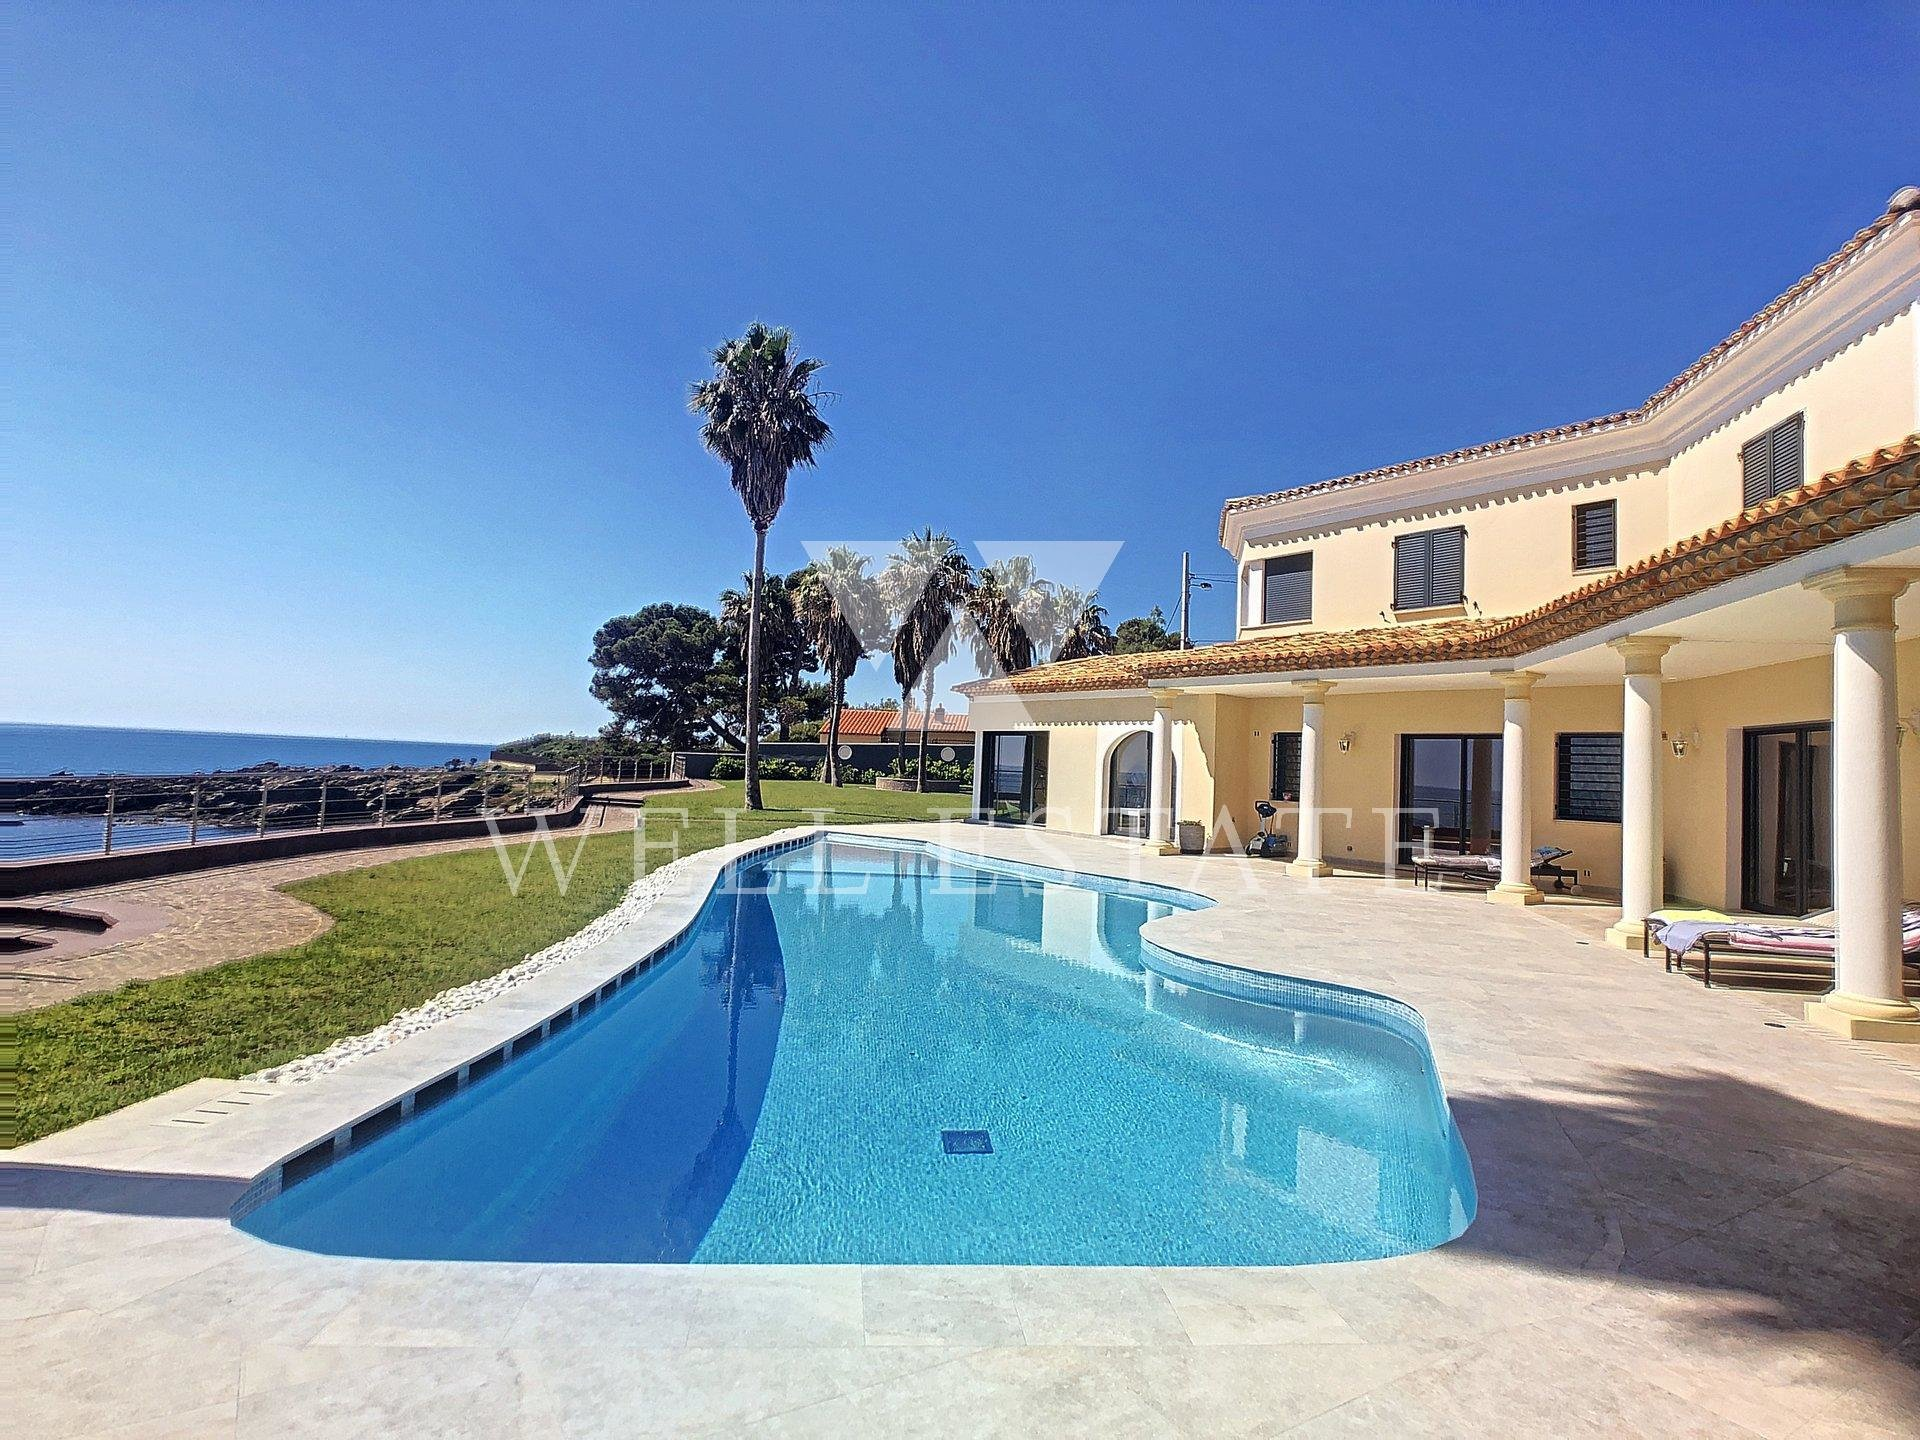 SAINT AYGULF BEACH FRONT 500M2 VILLA 6 BEDROOMS SWIMMING POOL